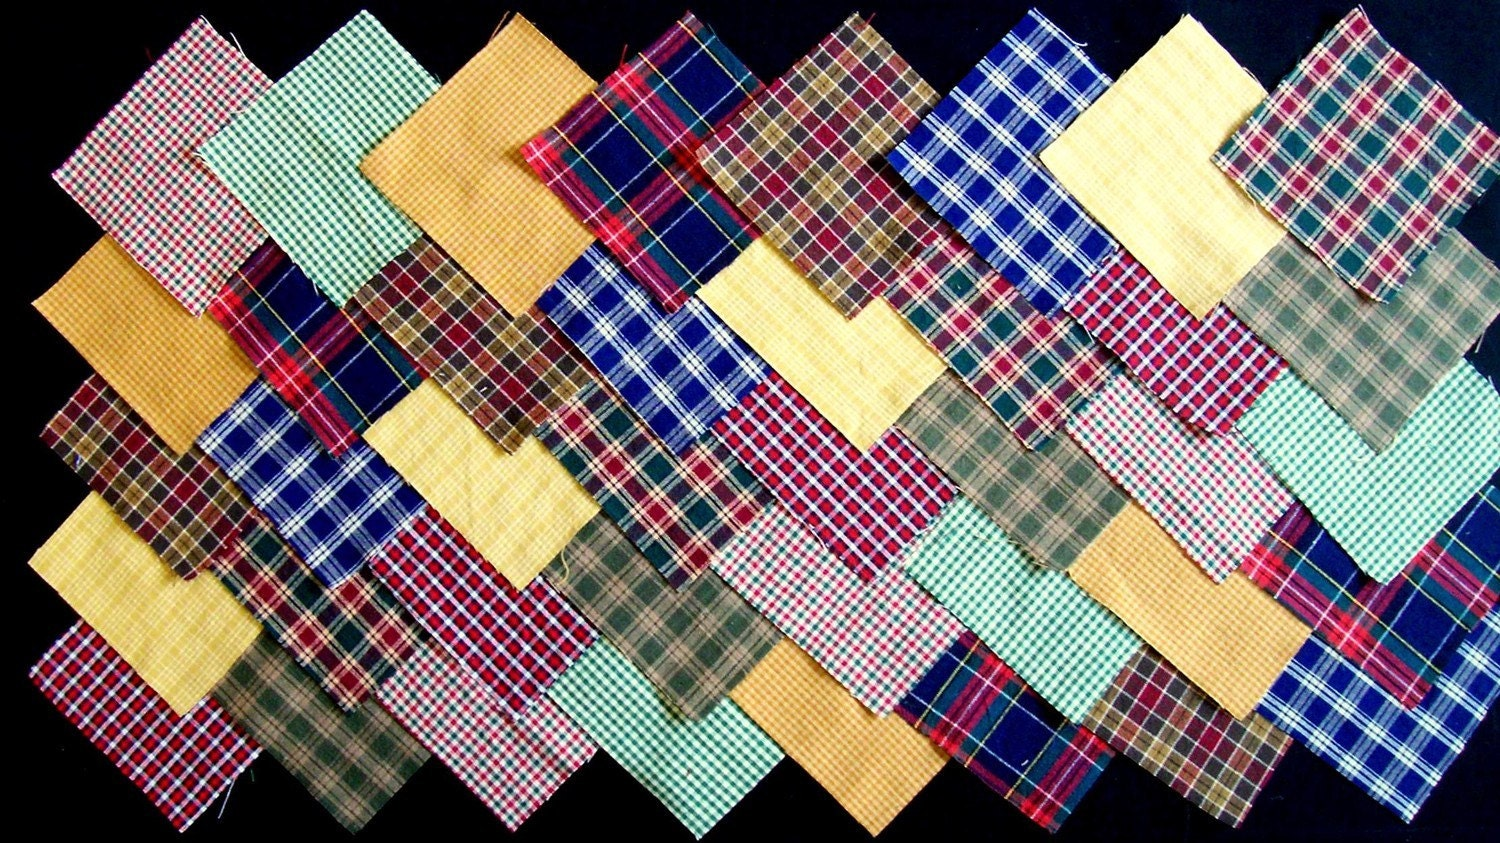 Quilt Patterns For Homespun Fabric : HOMESPUN PLAIDS 4 inch Quilt Fabric Squares by Hoosierquilter